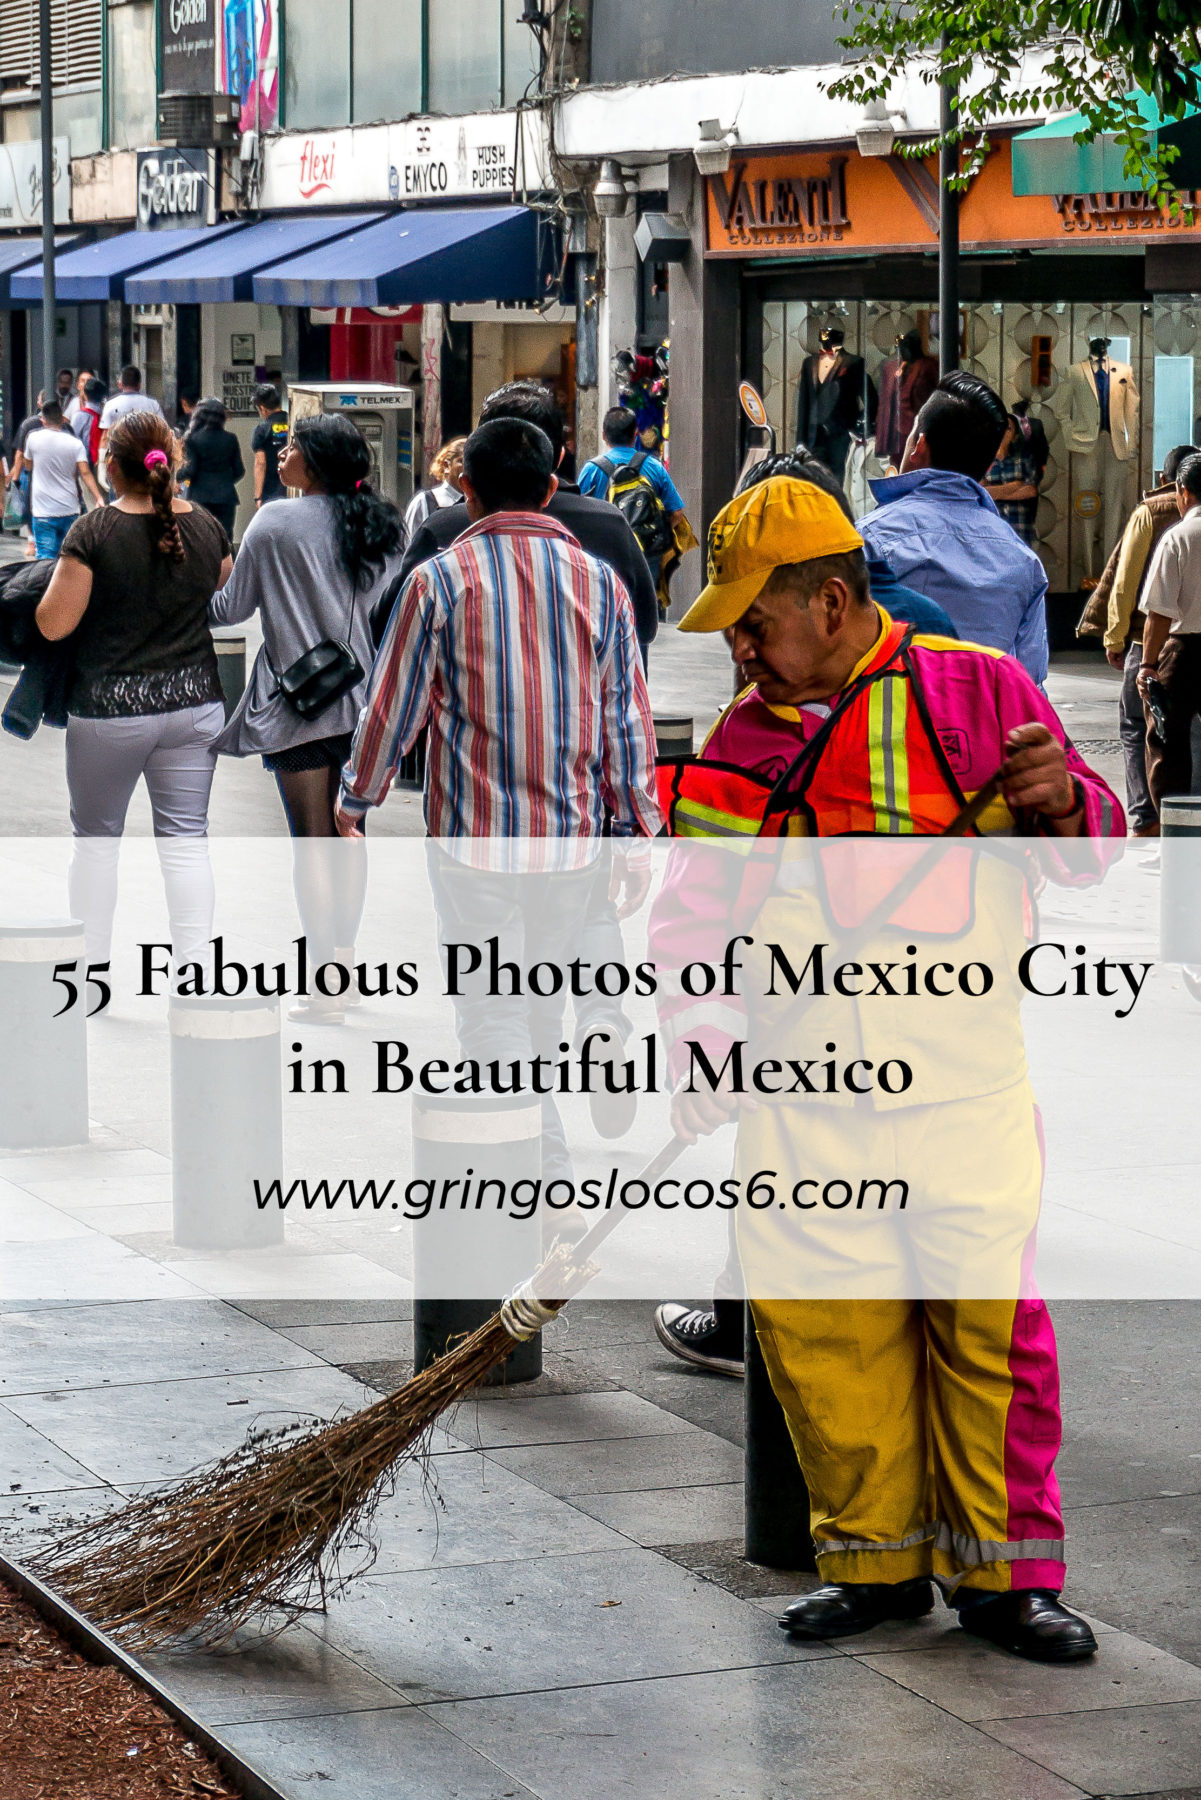 Mexico City! I love the history, the architecture, and the variety of life that can be found in the largest city in North America. Enjoy the photos :-)